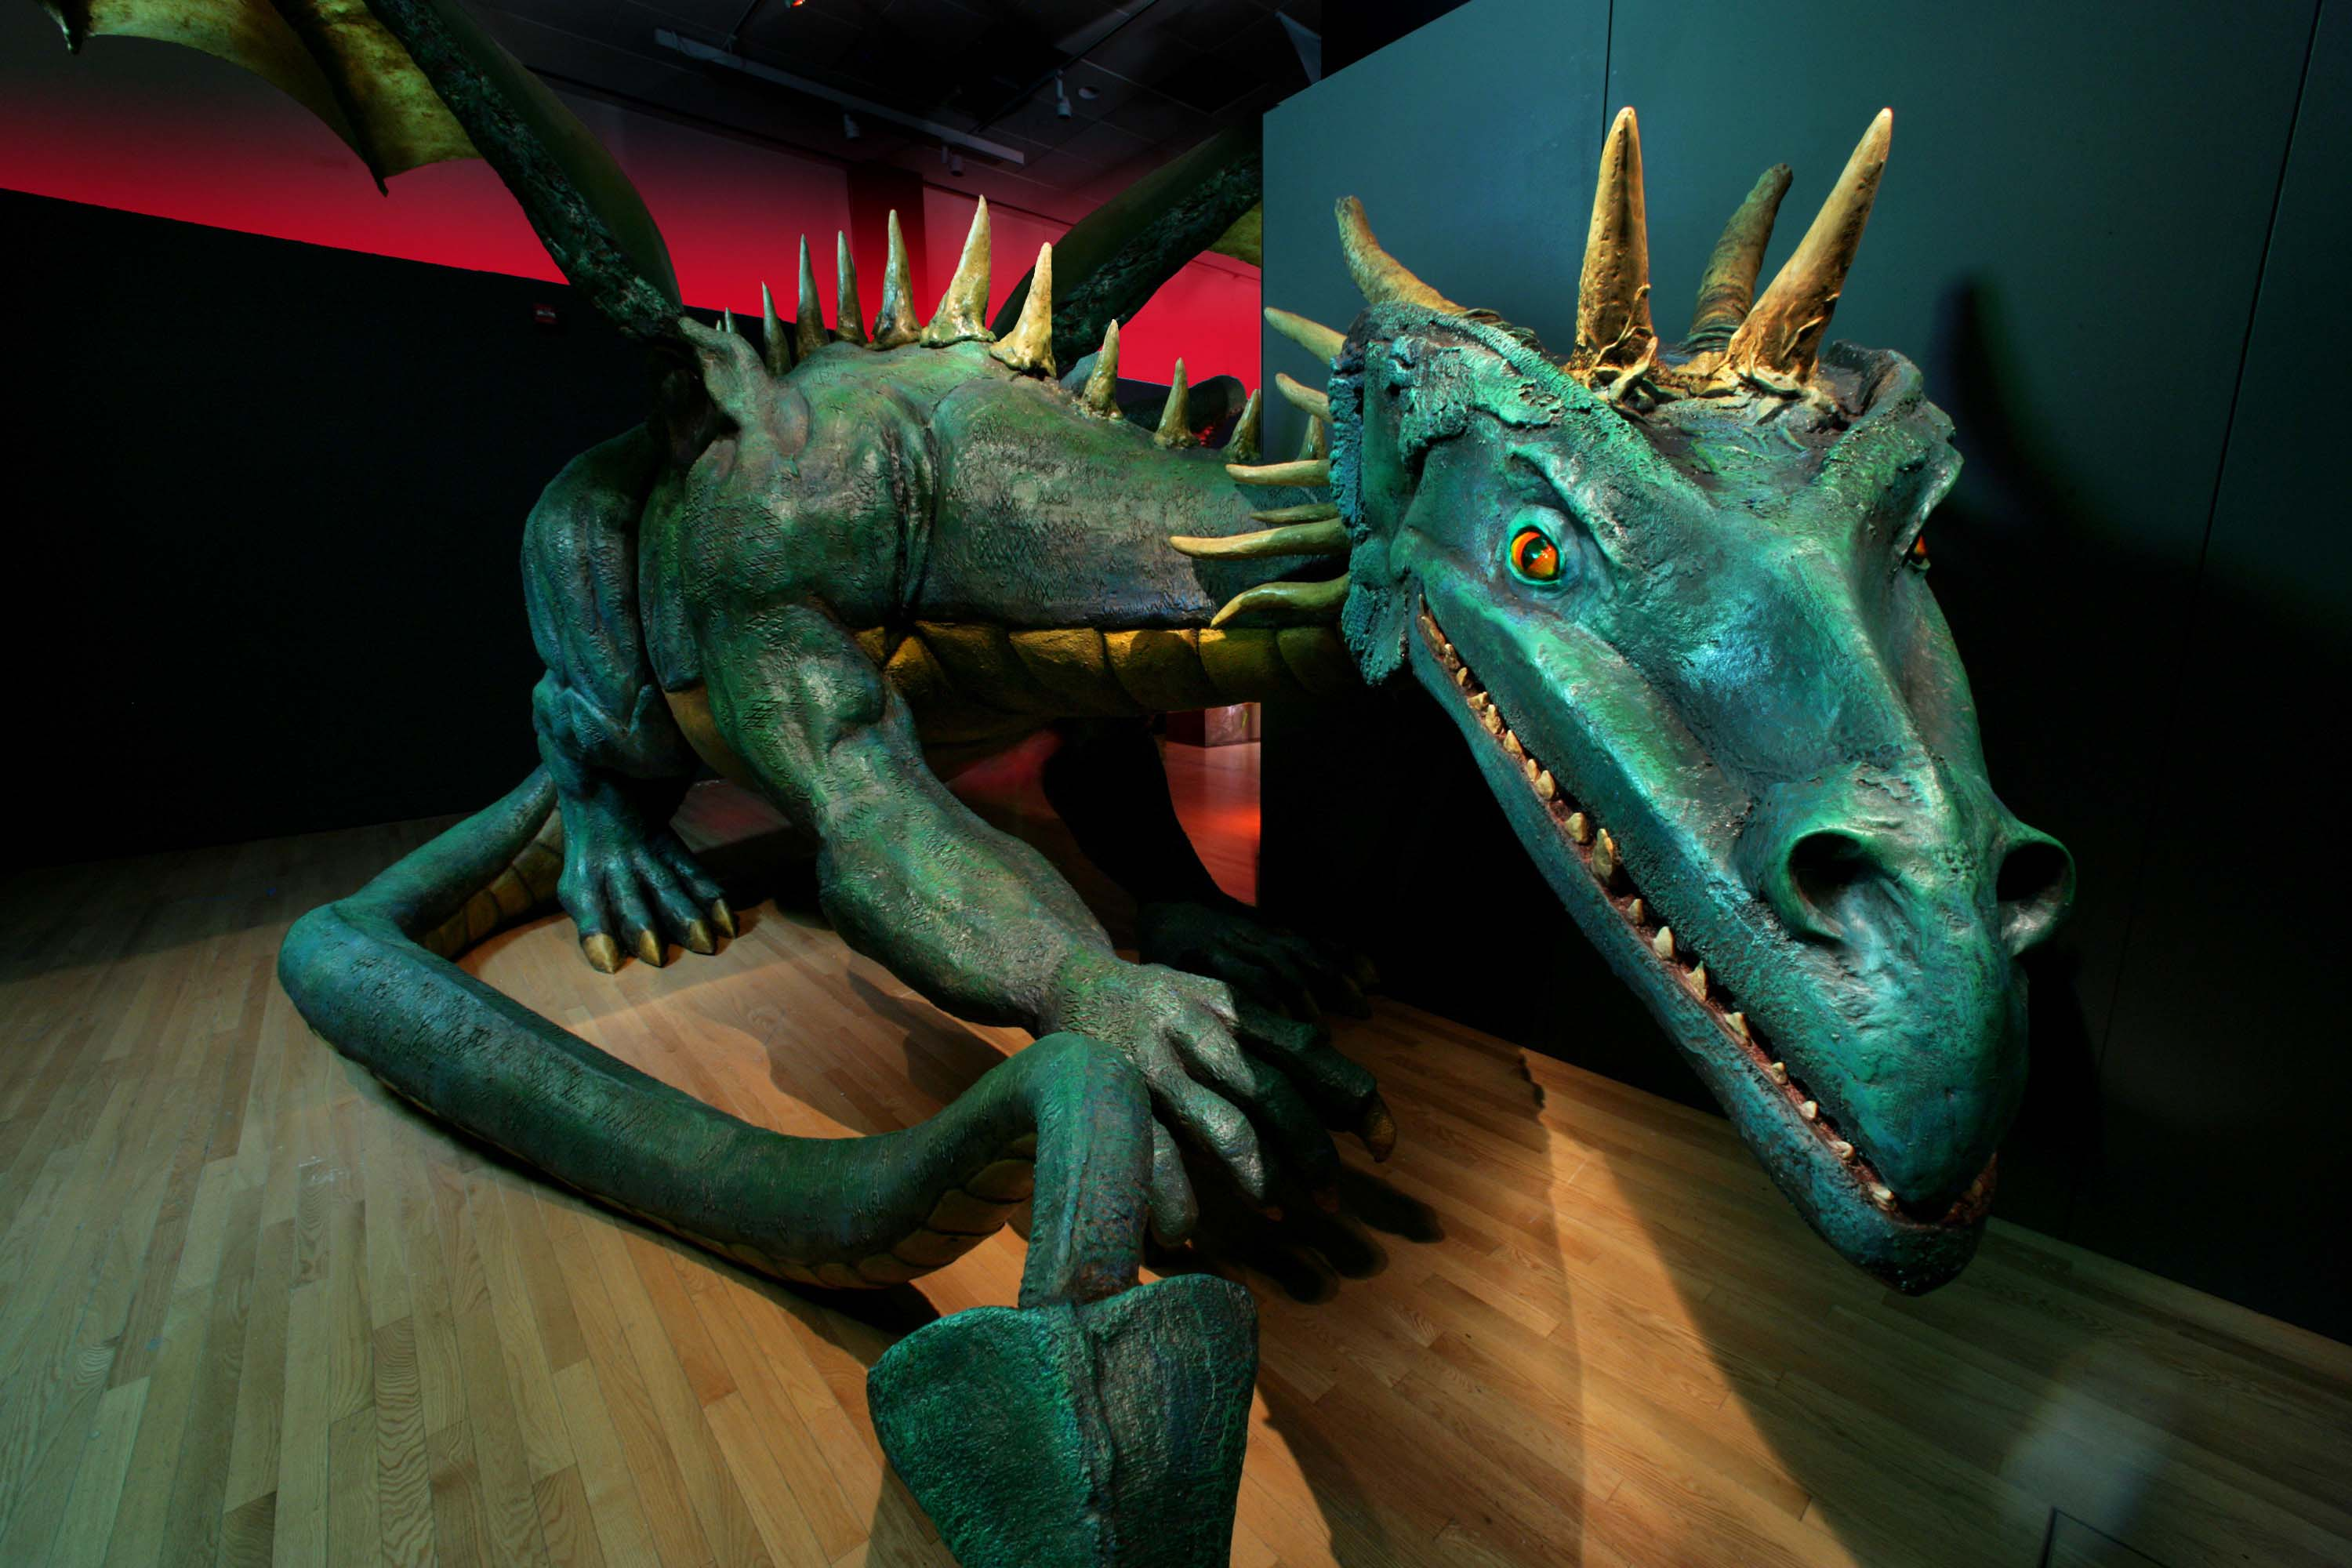 Grand Rapids Public Museum Announces New Exhibit Coming This Fall Dragons Unicorns Amp Mermaids